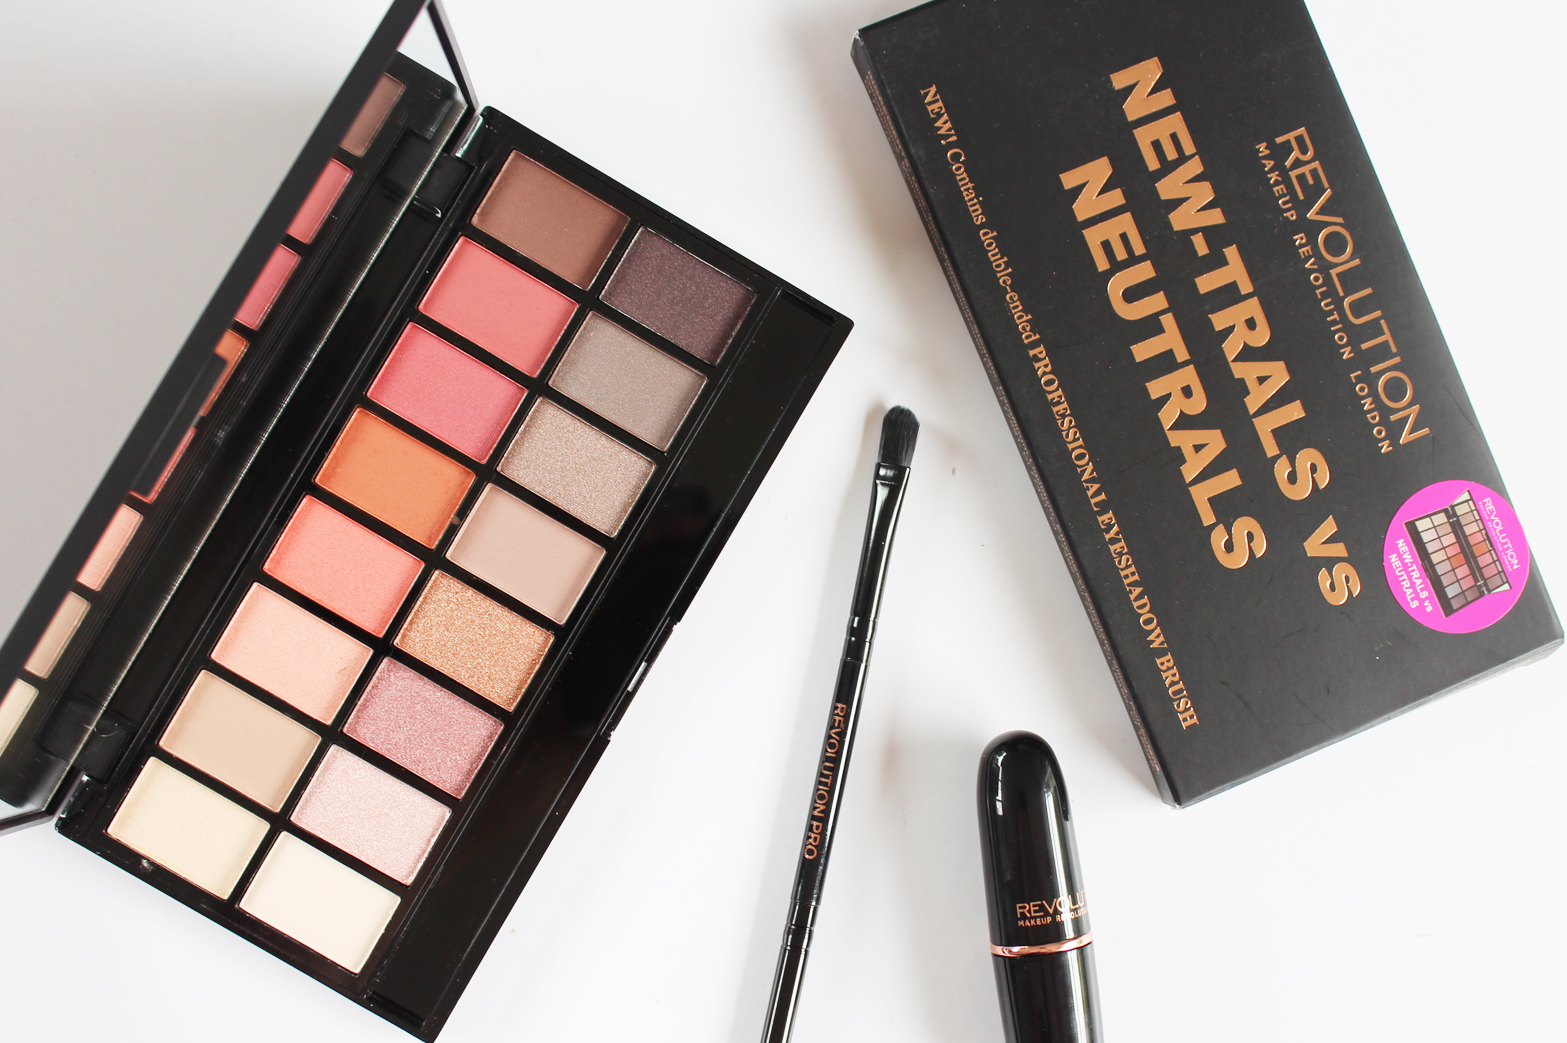 MAKEUP REVOLUTION | New-Trals Vs. Neutrals Professional Eyeshadow Palette - Review + Swatches - CassandraMyee